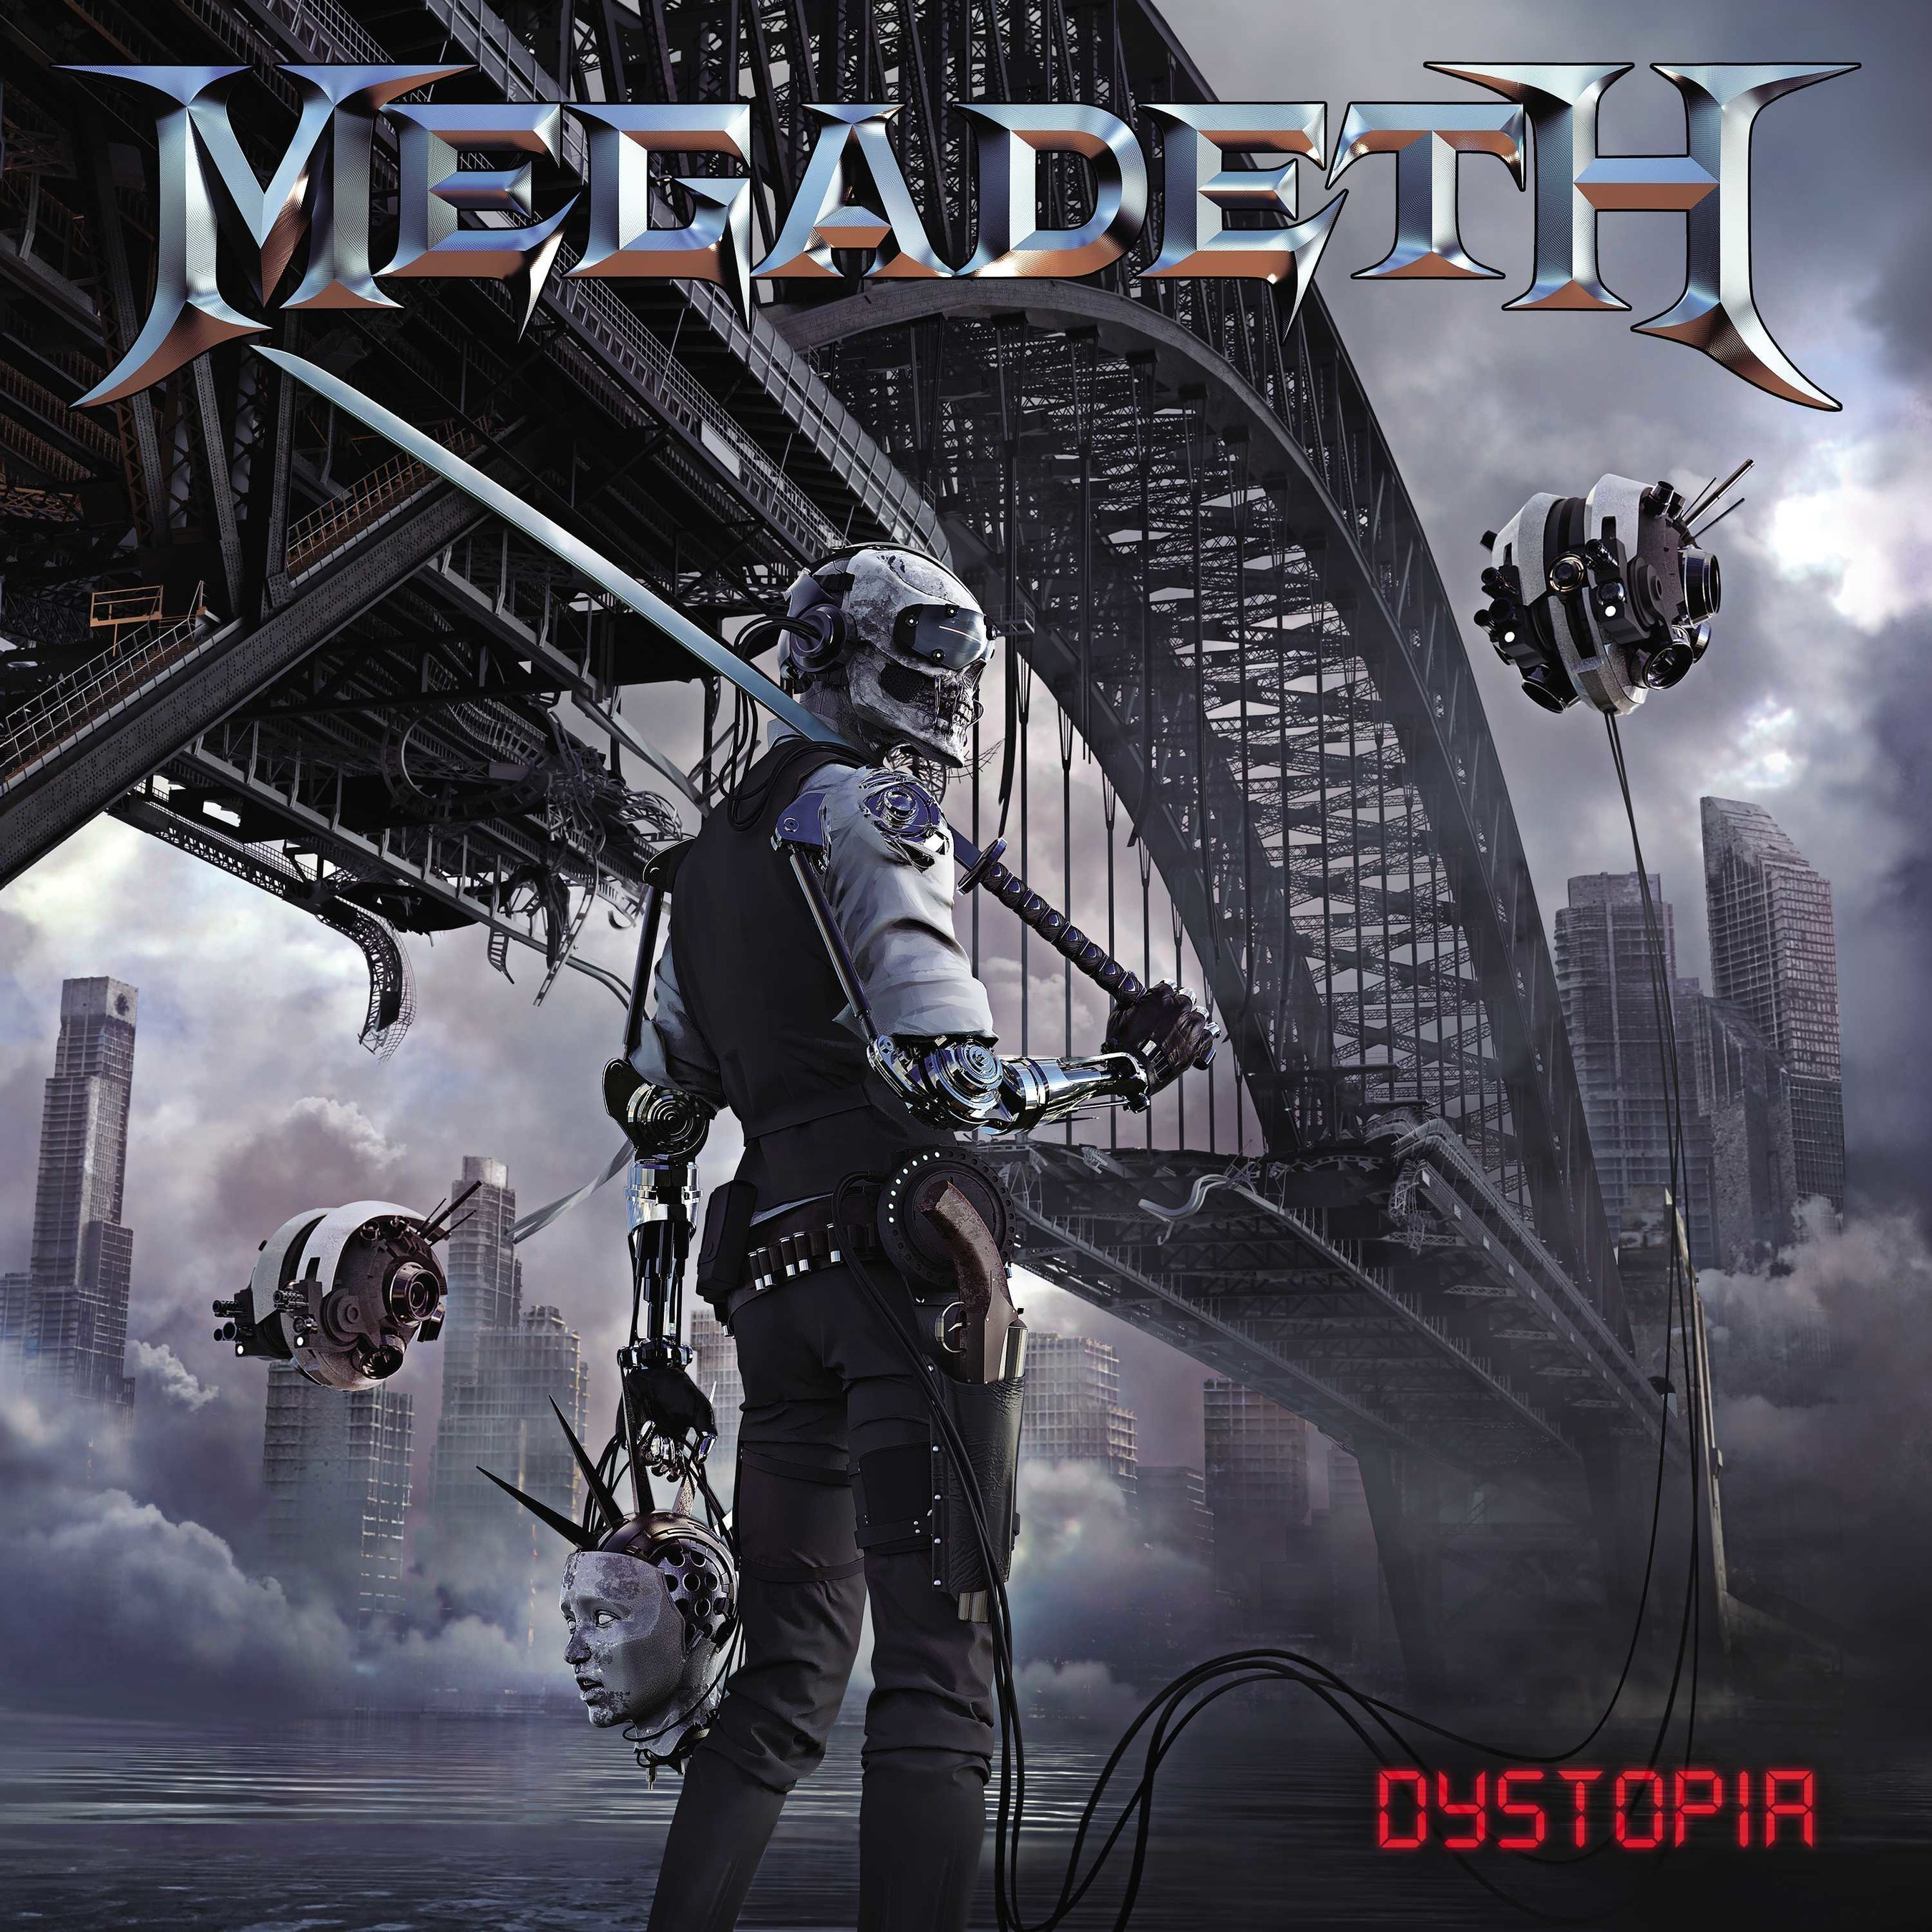 MEGADETH TO LAUNCH VIRTUAL REALITY EXPERIENCE FOR NEW ALBUM DYSTOPIA